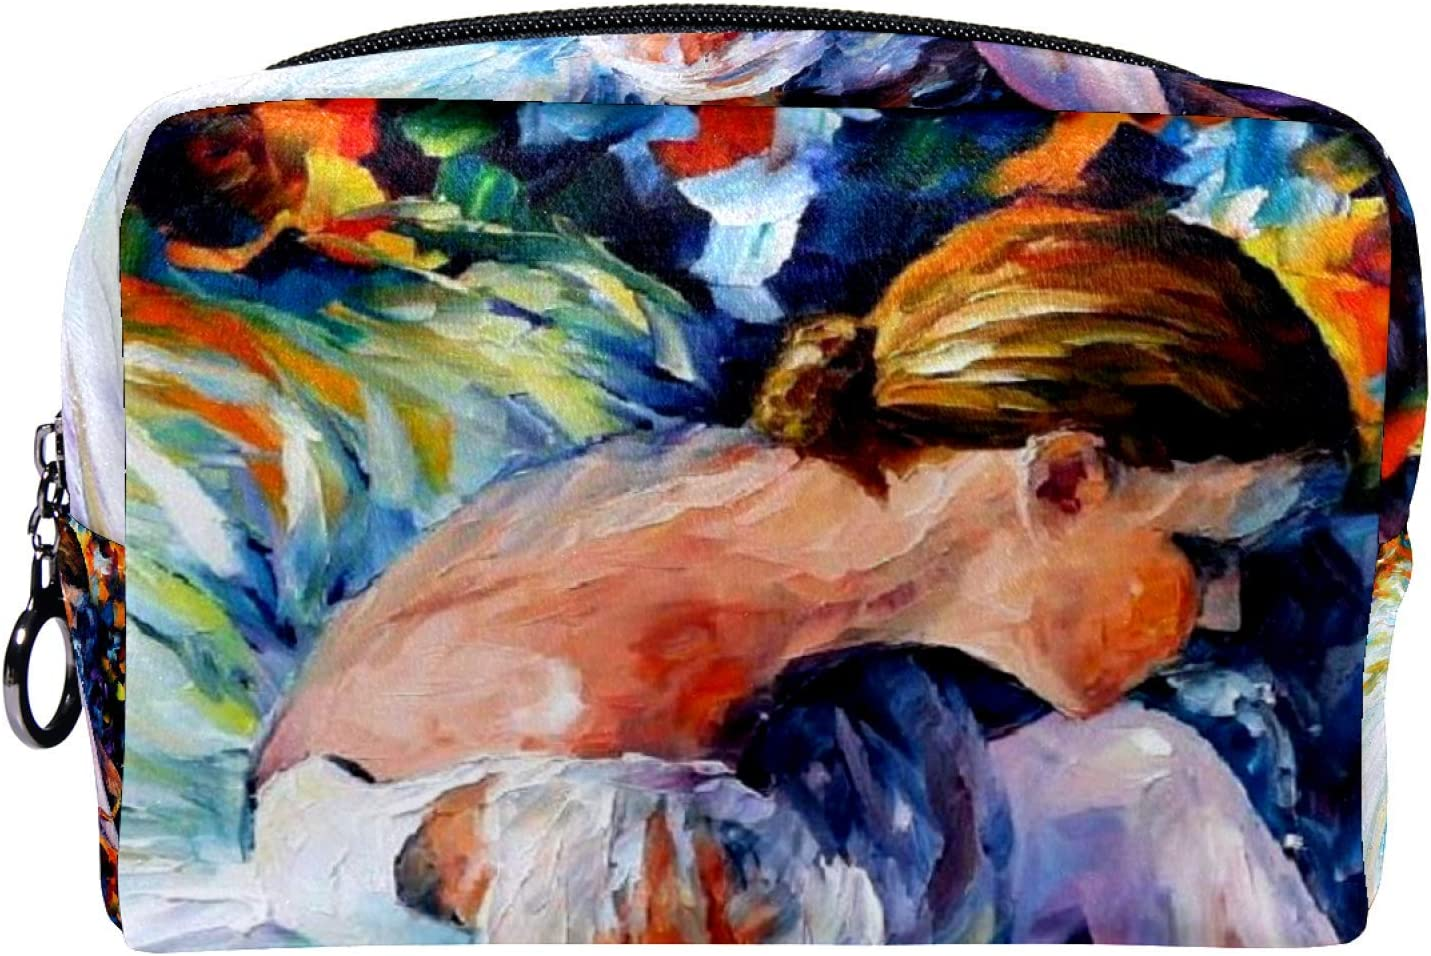 Makeup Toiletry Bag Fresno Mall for Women Travel Max 48% OFF Purse Kit Cosmetic Organize